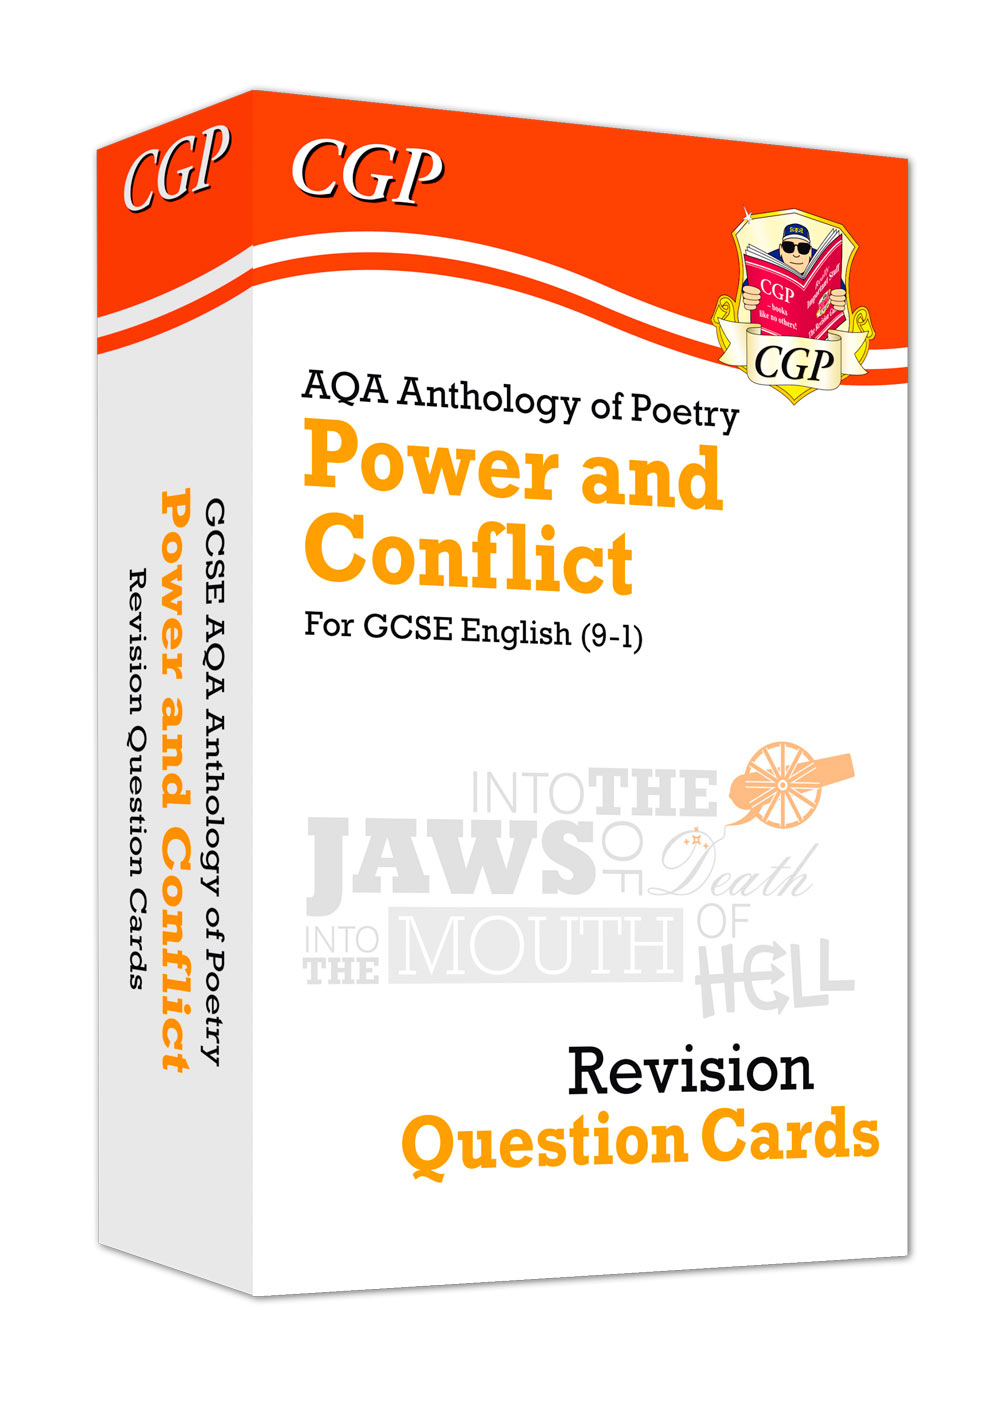 ACHF41 - New 9-1 GCSE English: AQA Power & Conflict Poetry Anthology - Revision Question Cards